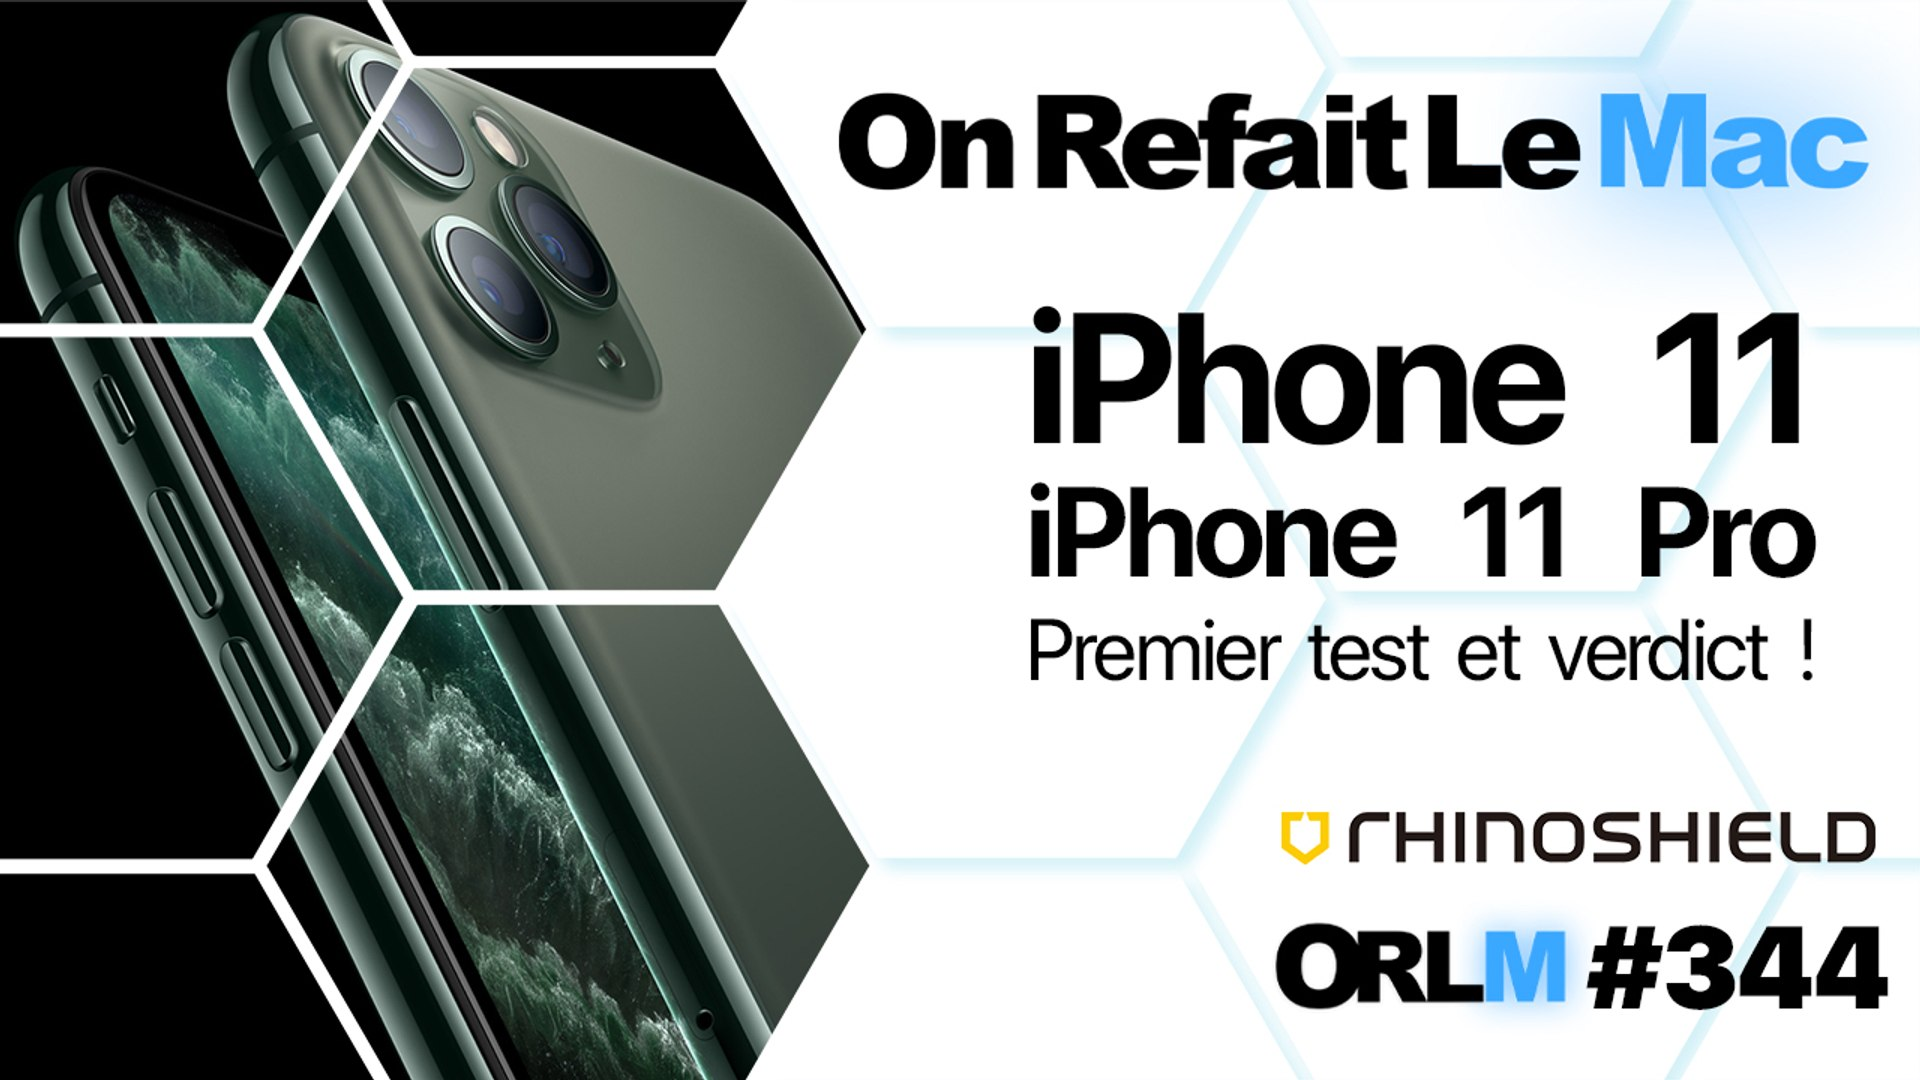 ORLM-344 : iPhone 11, iPhone 11 Pro, premier test et verdict !